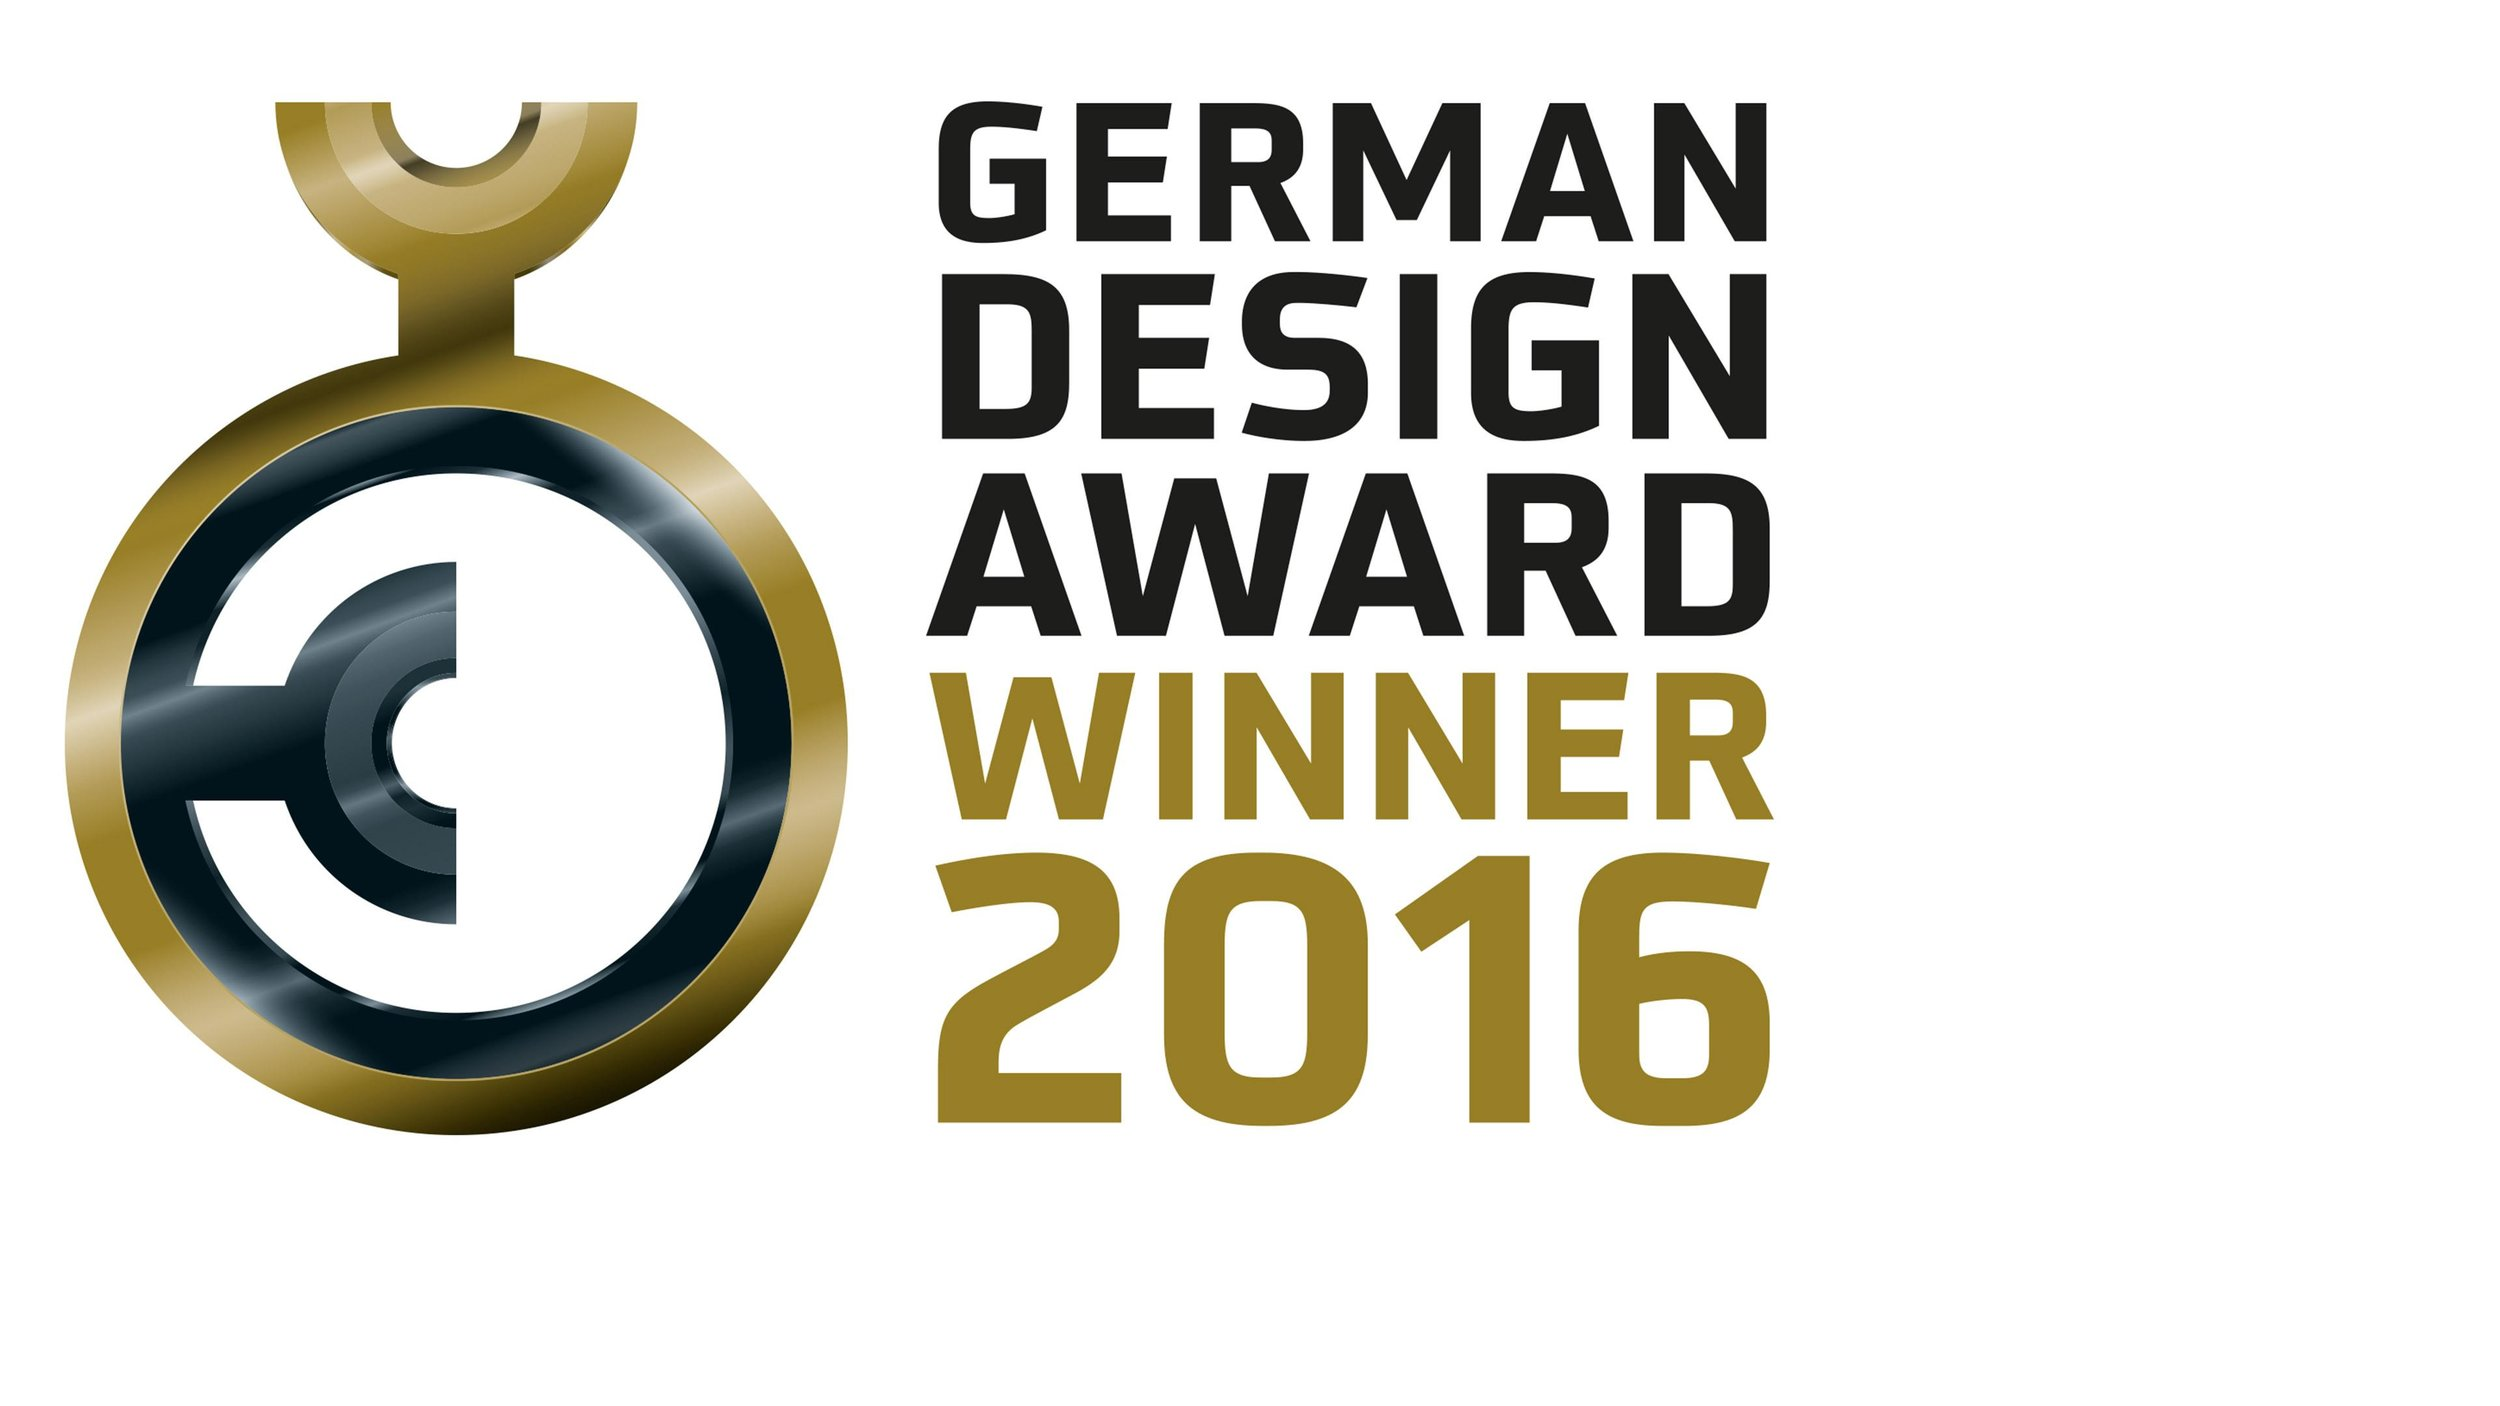 German_Design_Award_Winner_2016_neuneu3.jpg